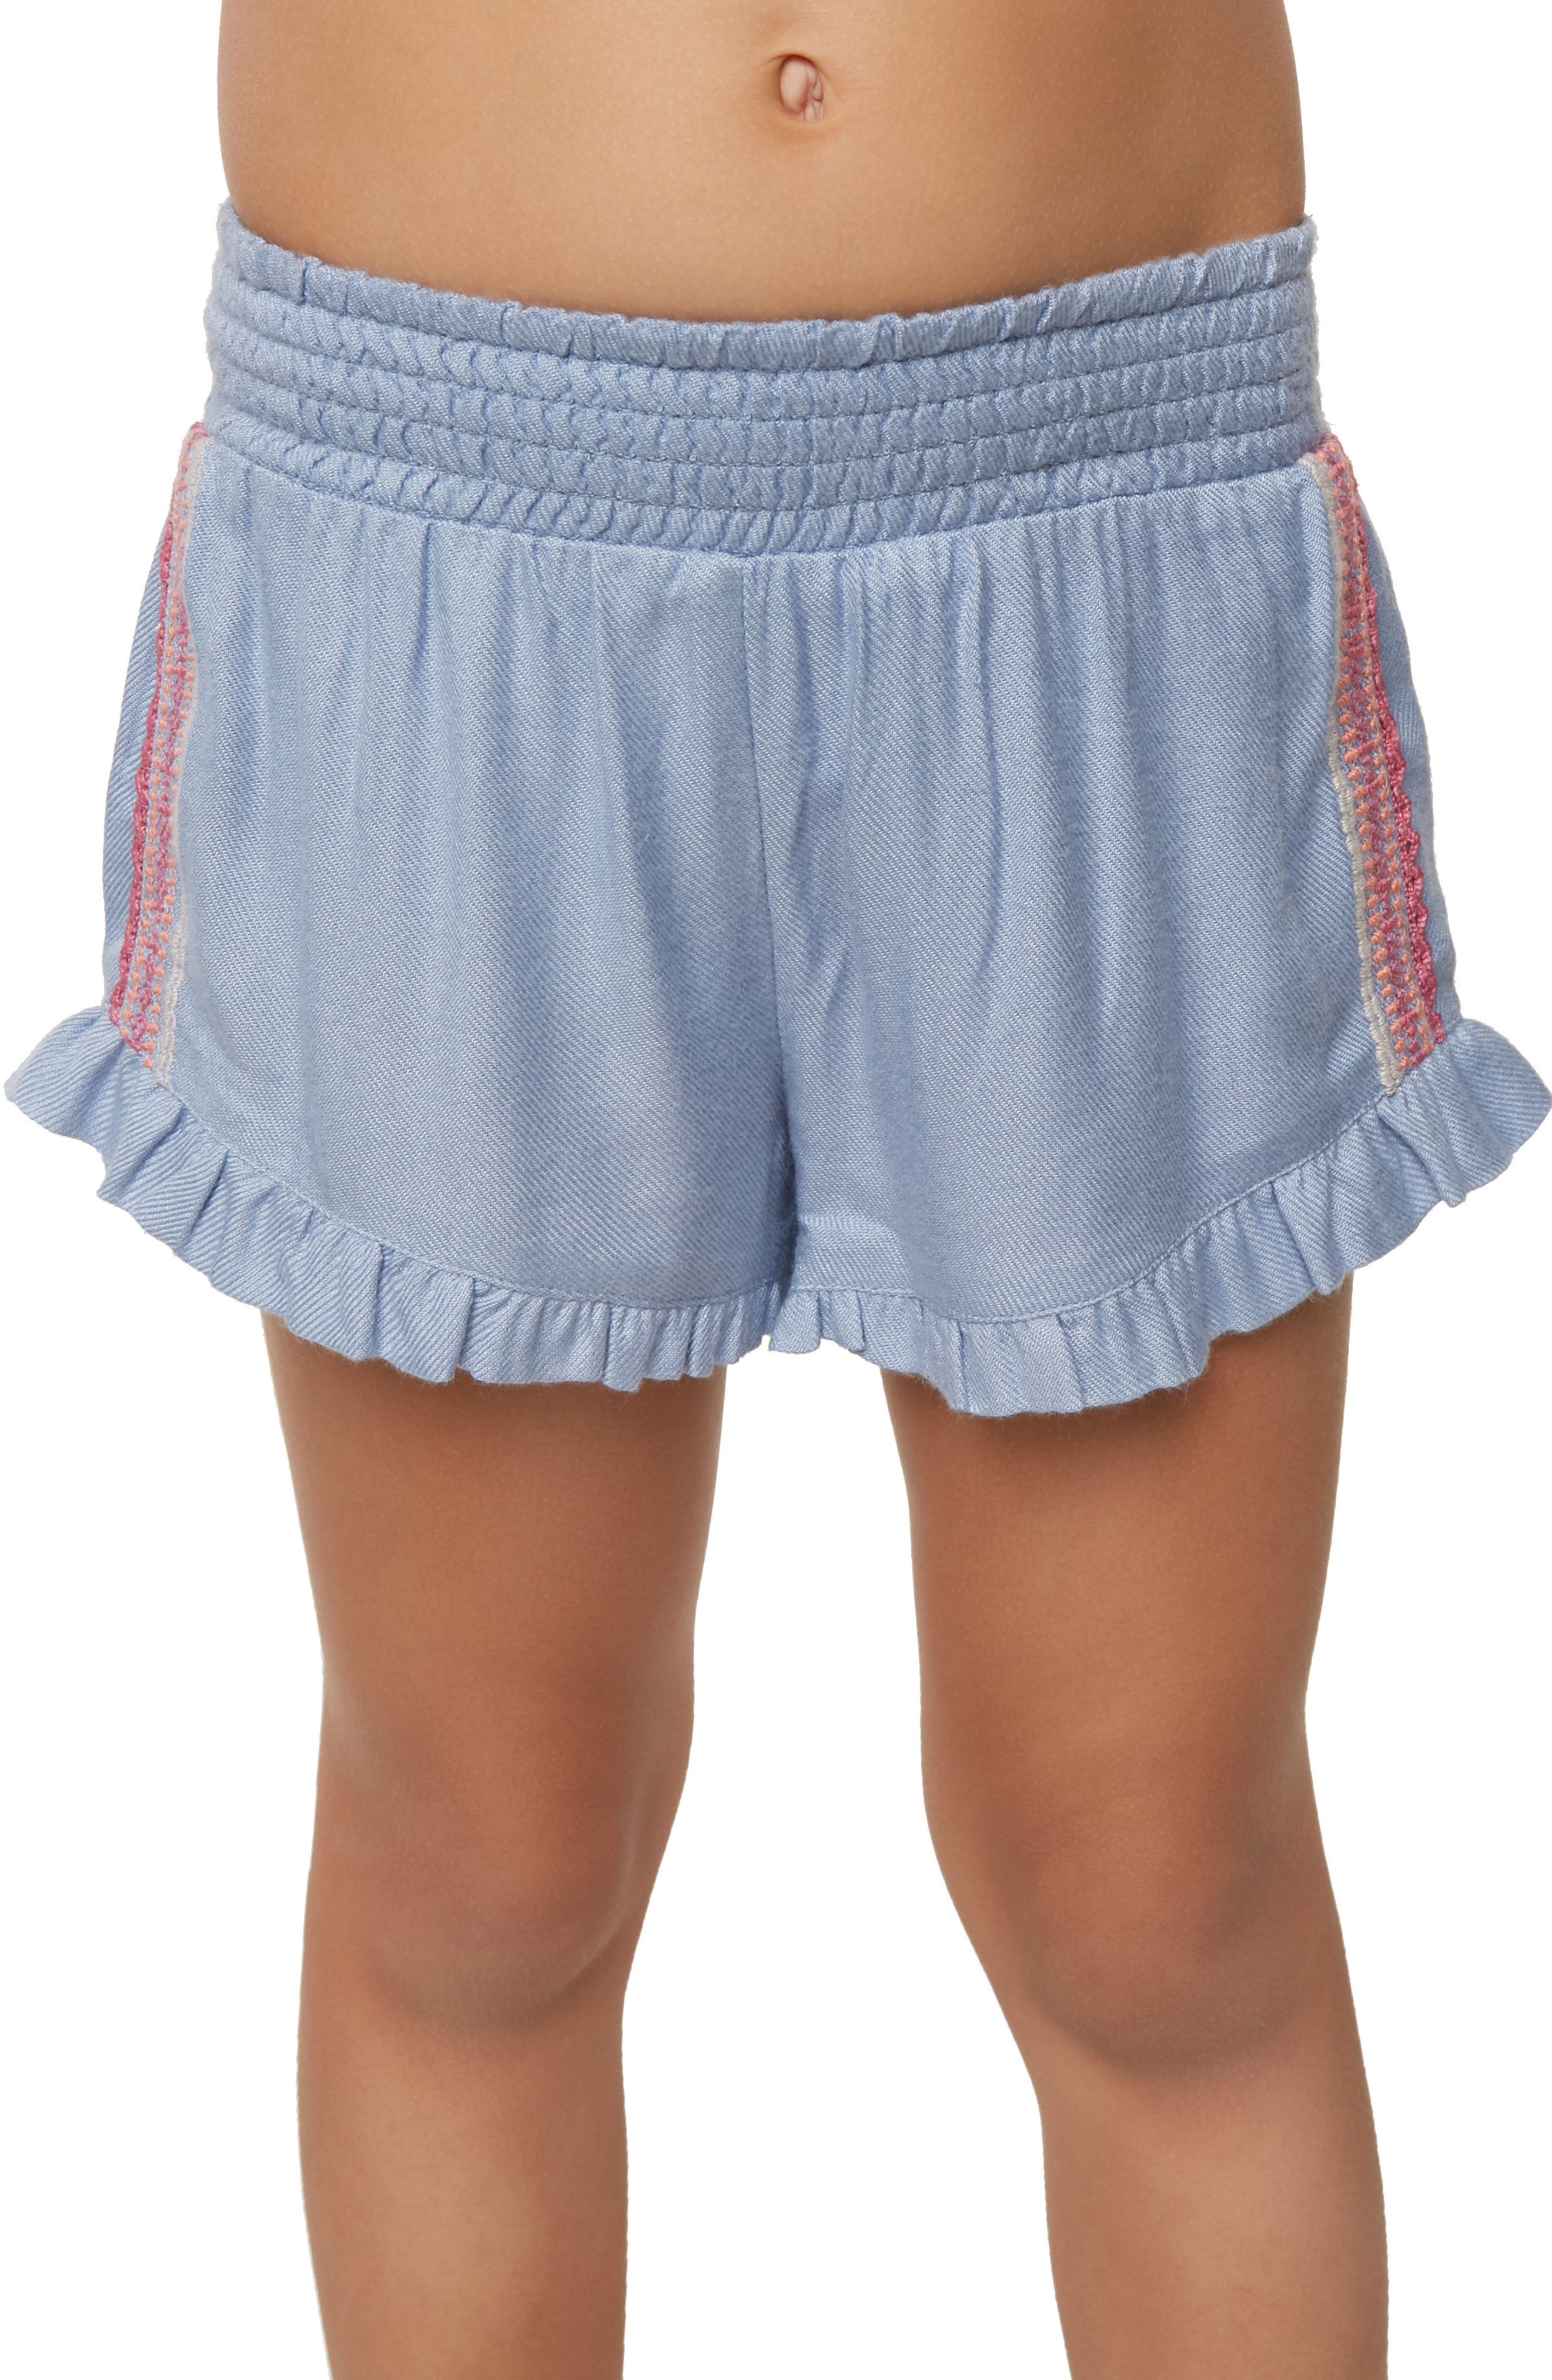 O'NEILL,                             Bay Ruffle Shorts,                             Alternate thumbnail 3, color,                             400